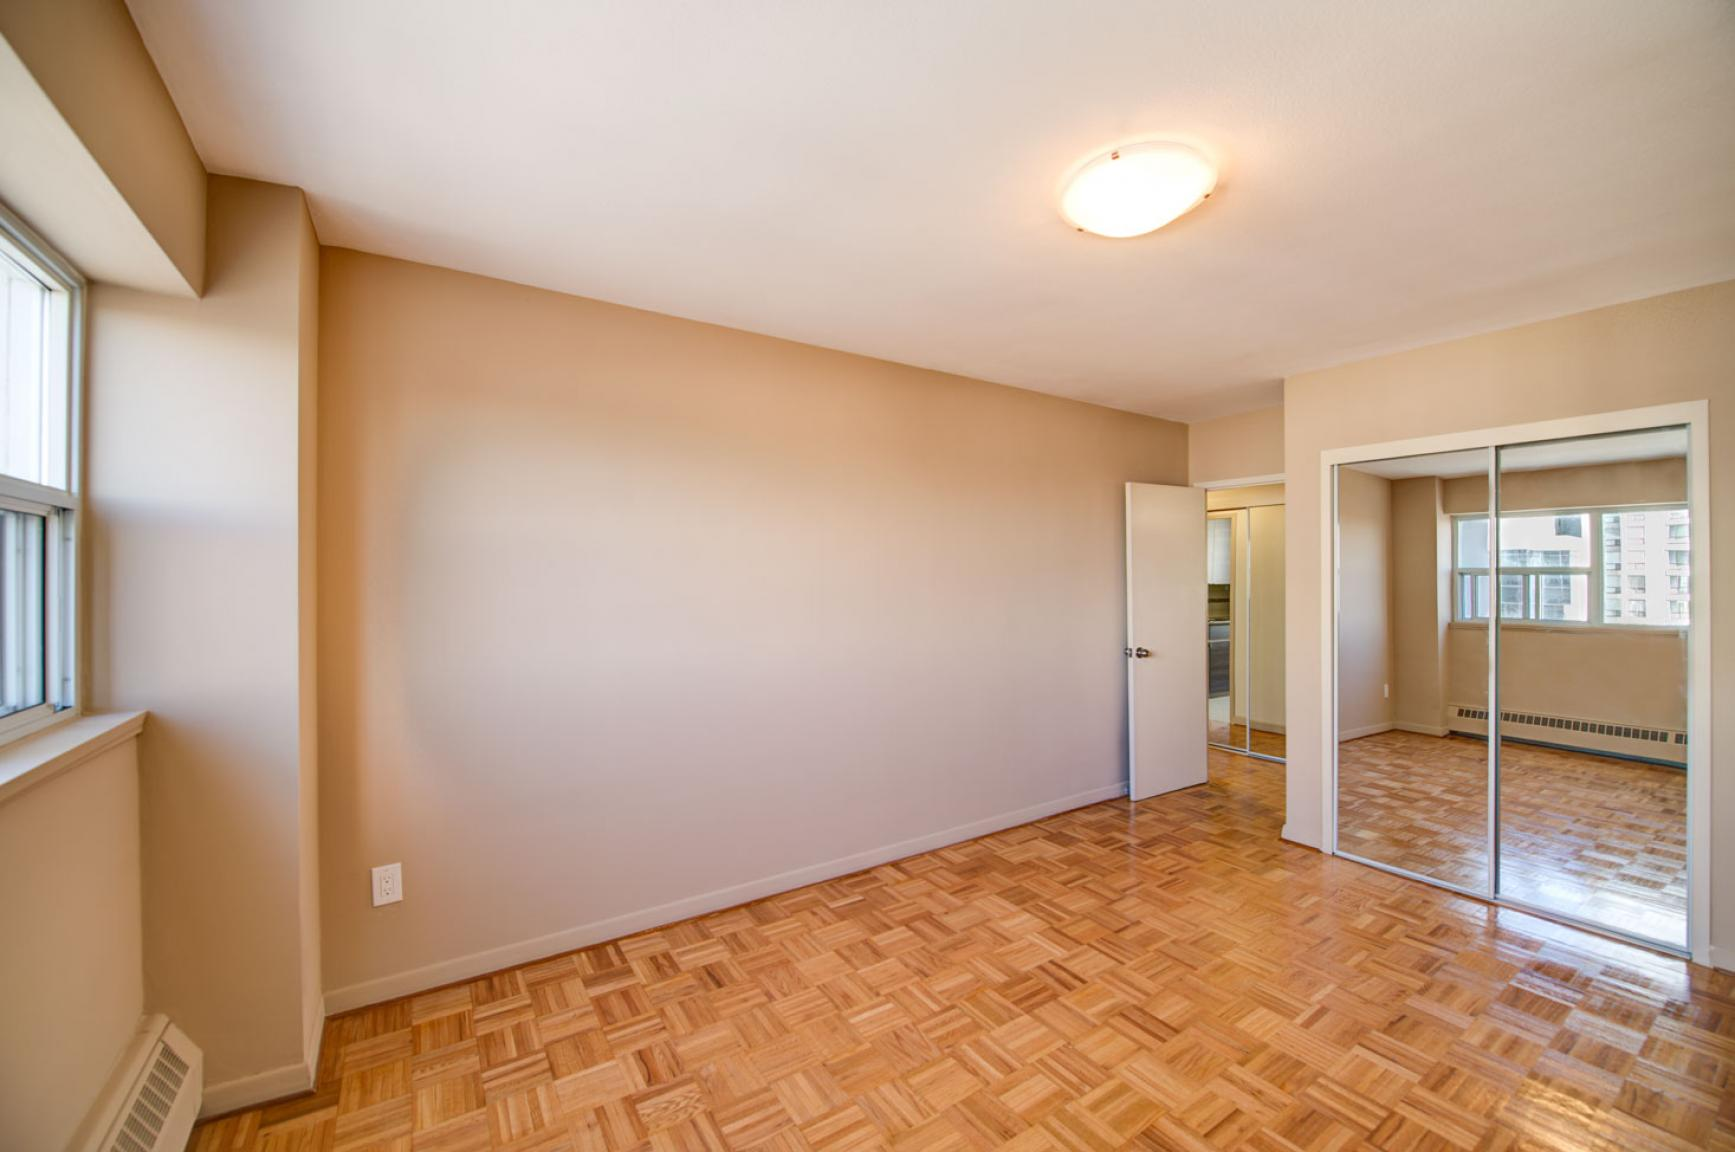 1 bedroom Apartments for rent in Toronto at Holly Tower - Photo 18 - RentersPages – L399824